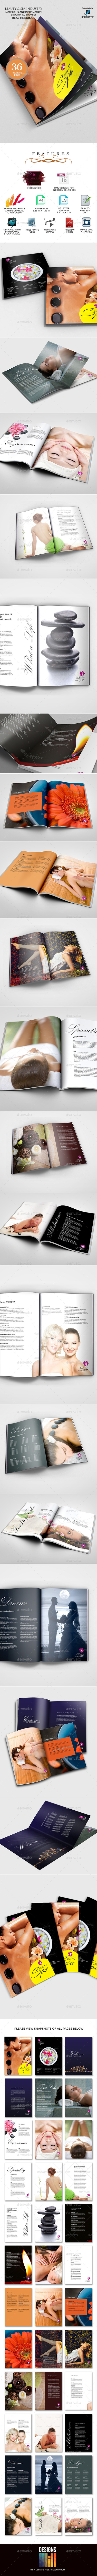 GraphicRiver Beauty Salon and Spa Service Brochure 9630875